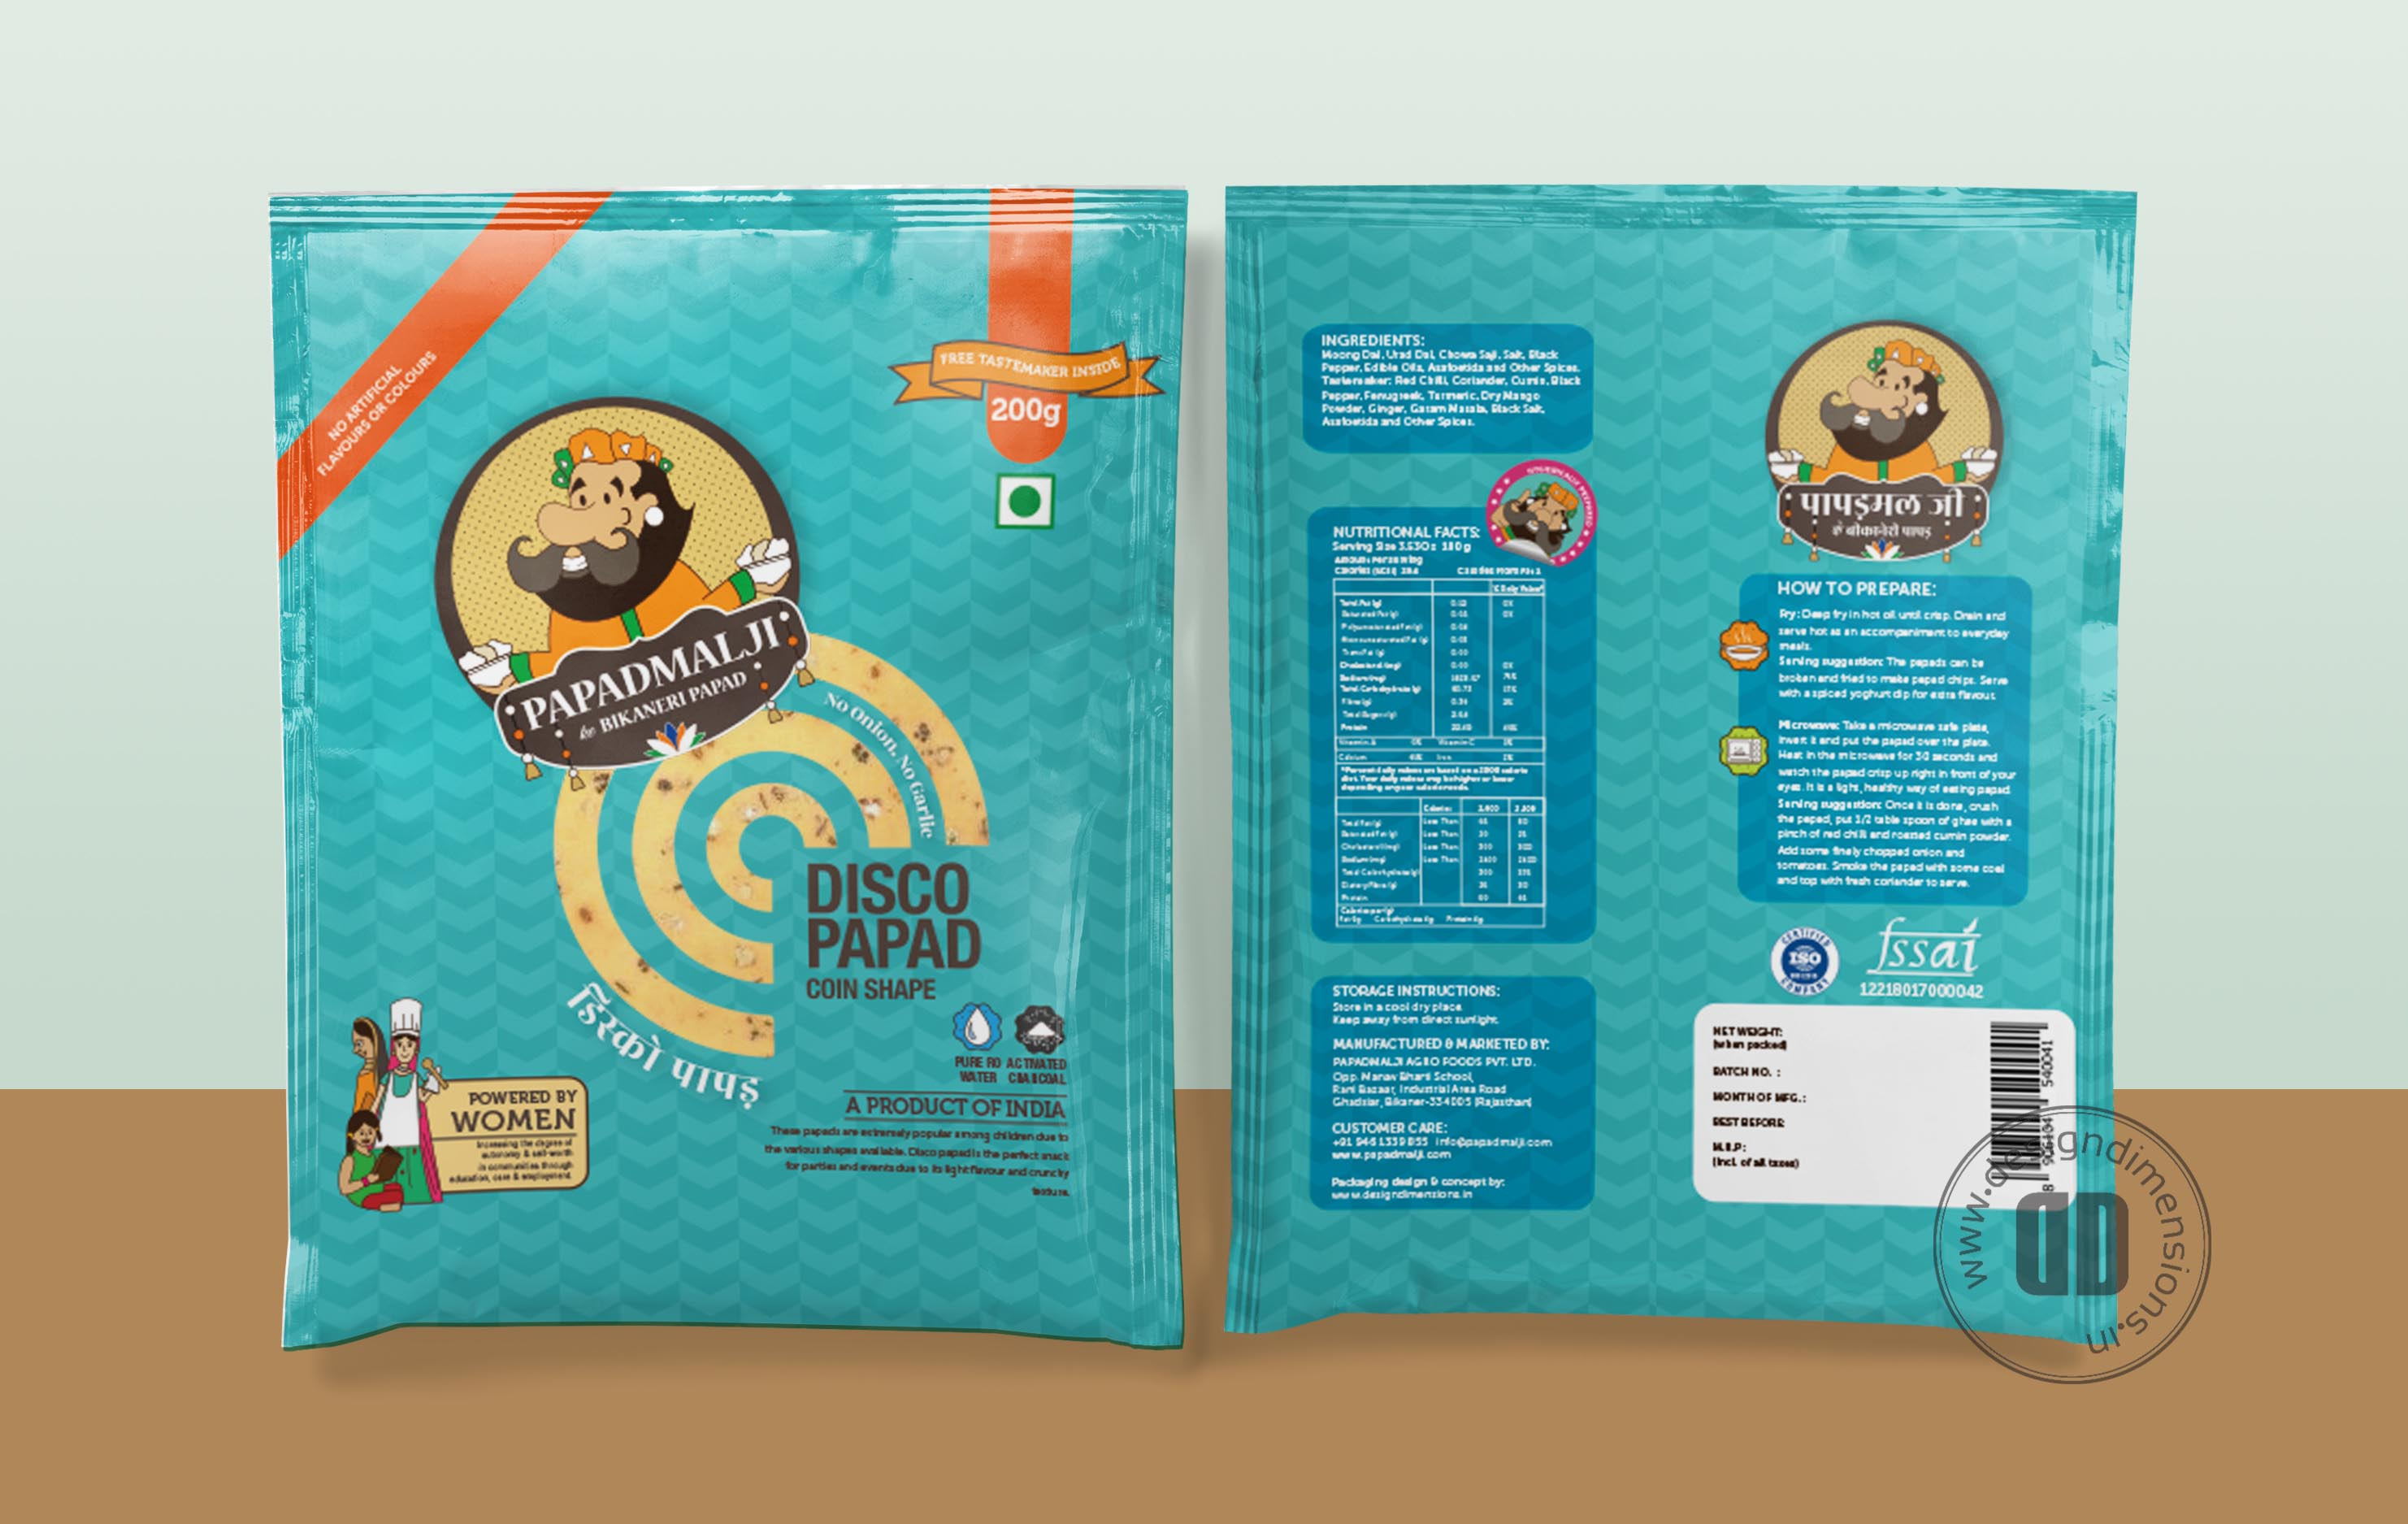 Disco Papad packaging